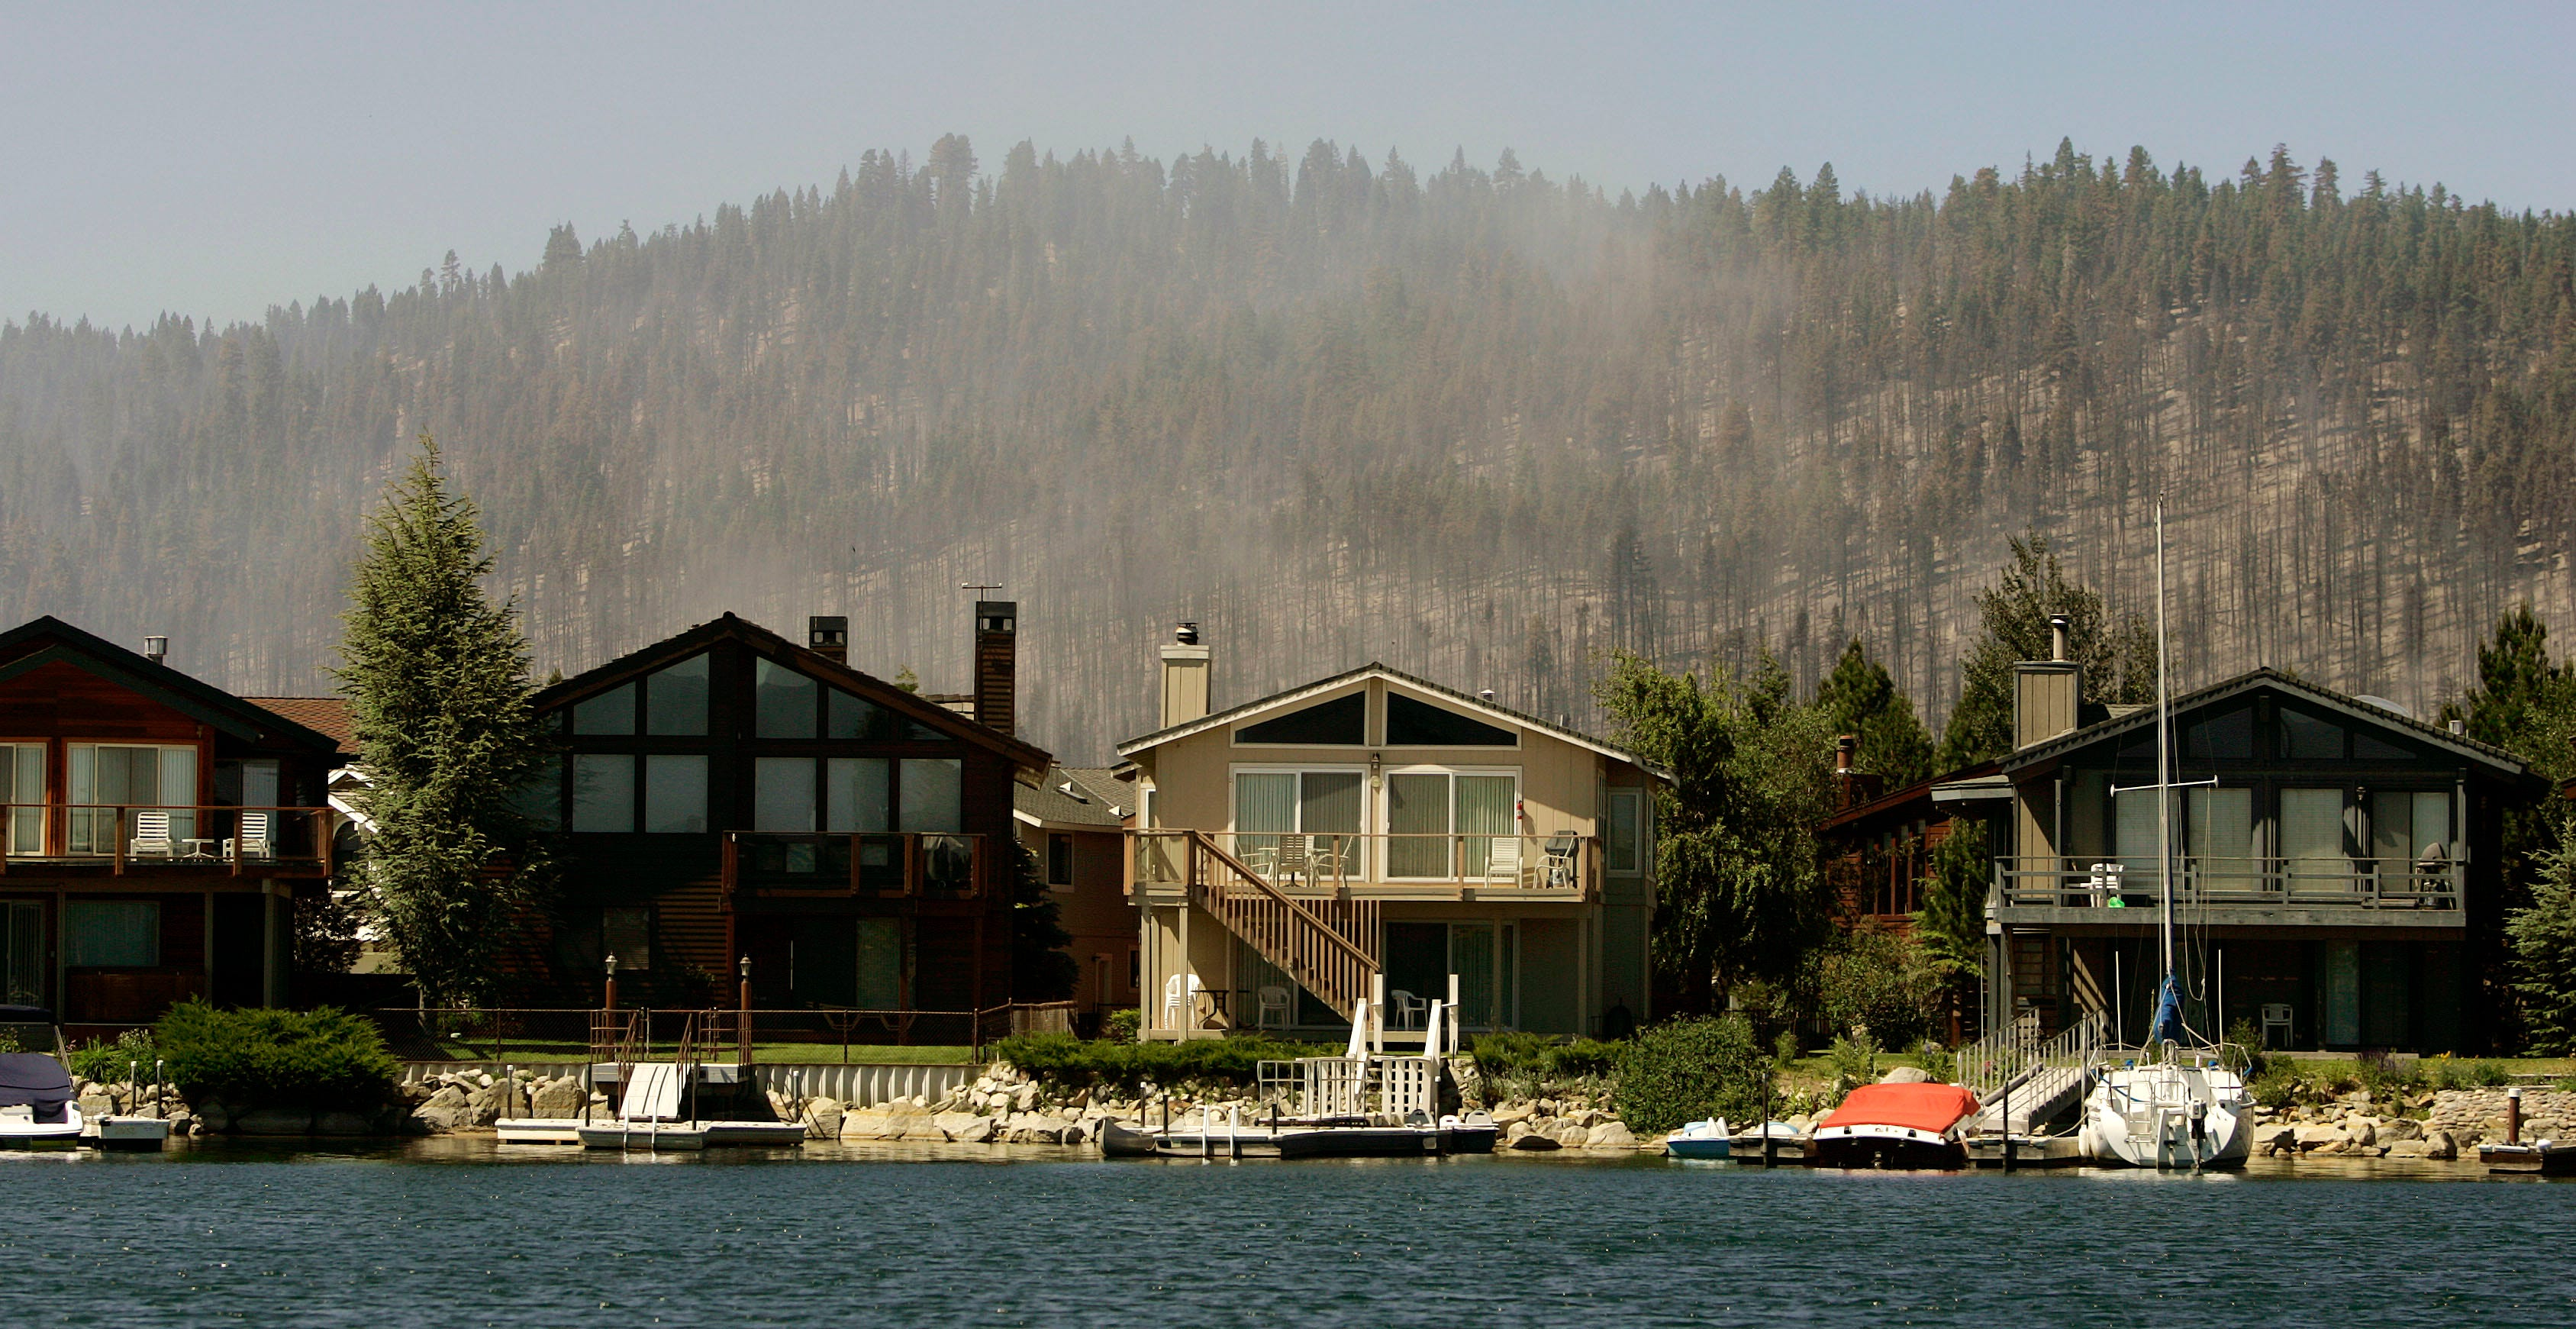 The Angora fire is seen on a hillside behind multi-million dollar lakefront homes of the Tahoe Keys area, which lie in the path of the fire, Thursday, June 28, 2007, in this view from Lake Tahoe, Calif. A break in the wind allowed firefighters to gain ground on a stubborn wildfire near Lake Tahoe as they prepared for more blustery conditions forecast for Thursday. (AP Photo/Ben Margot)